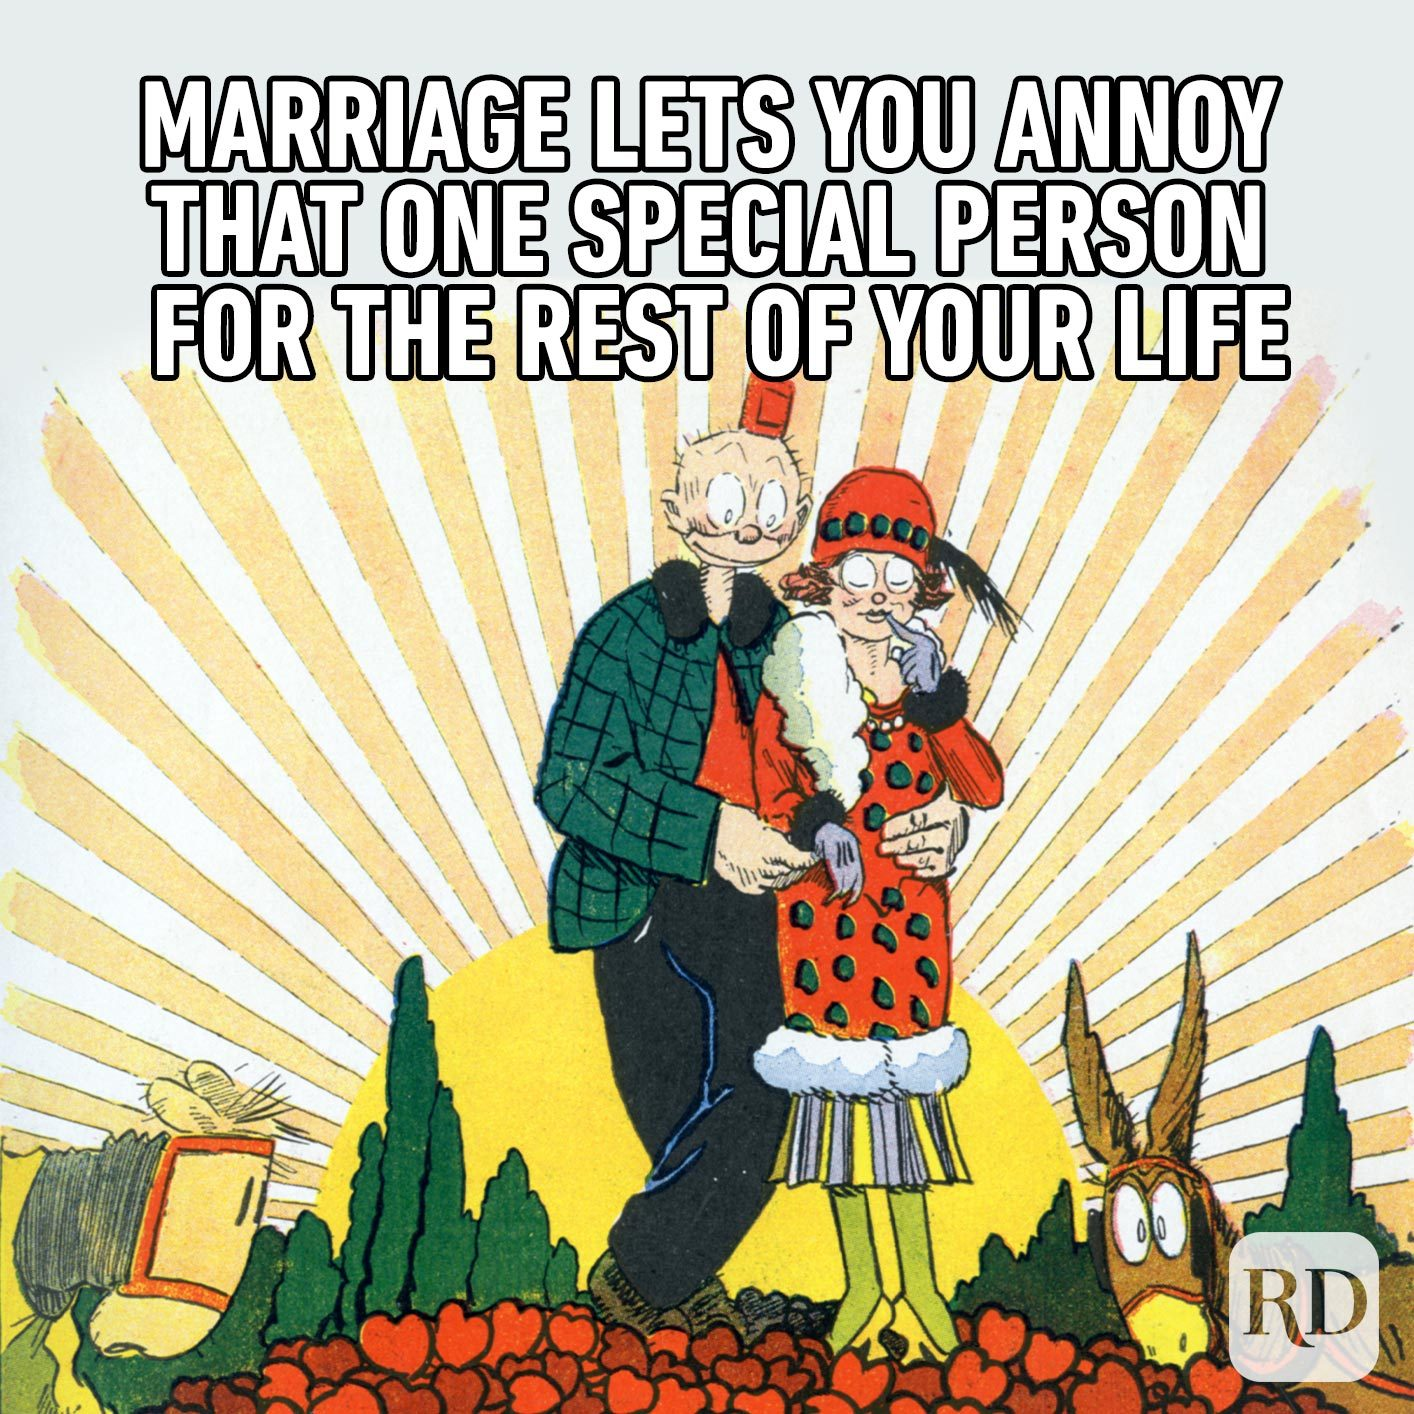 Illustration of two people on a field of hearts. Meme text: Marriage lets you annoy that one special person for the rest of your life